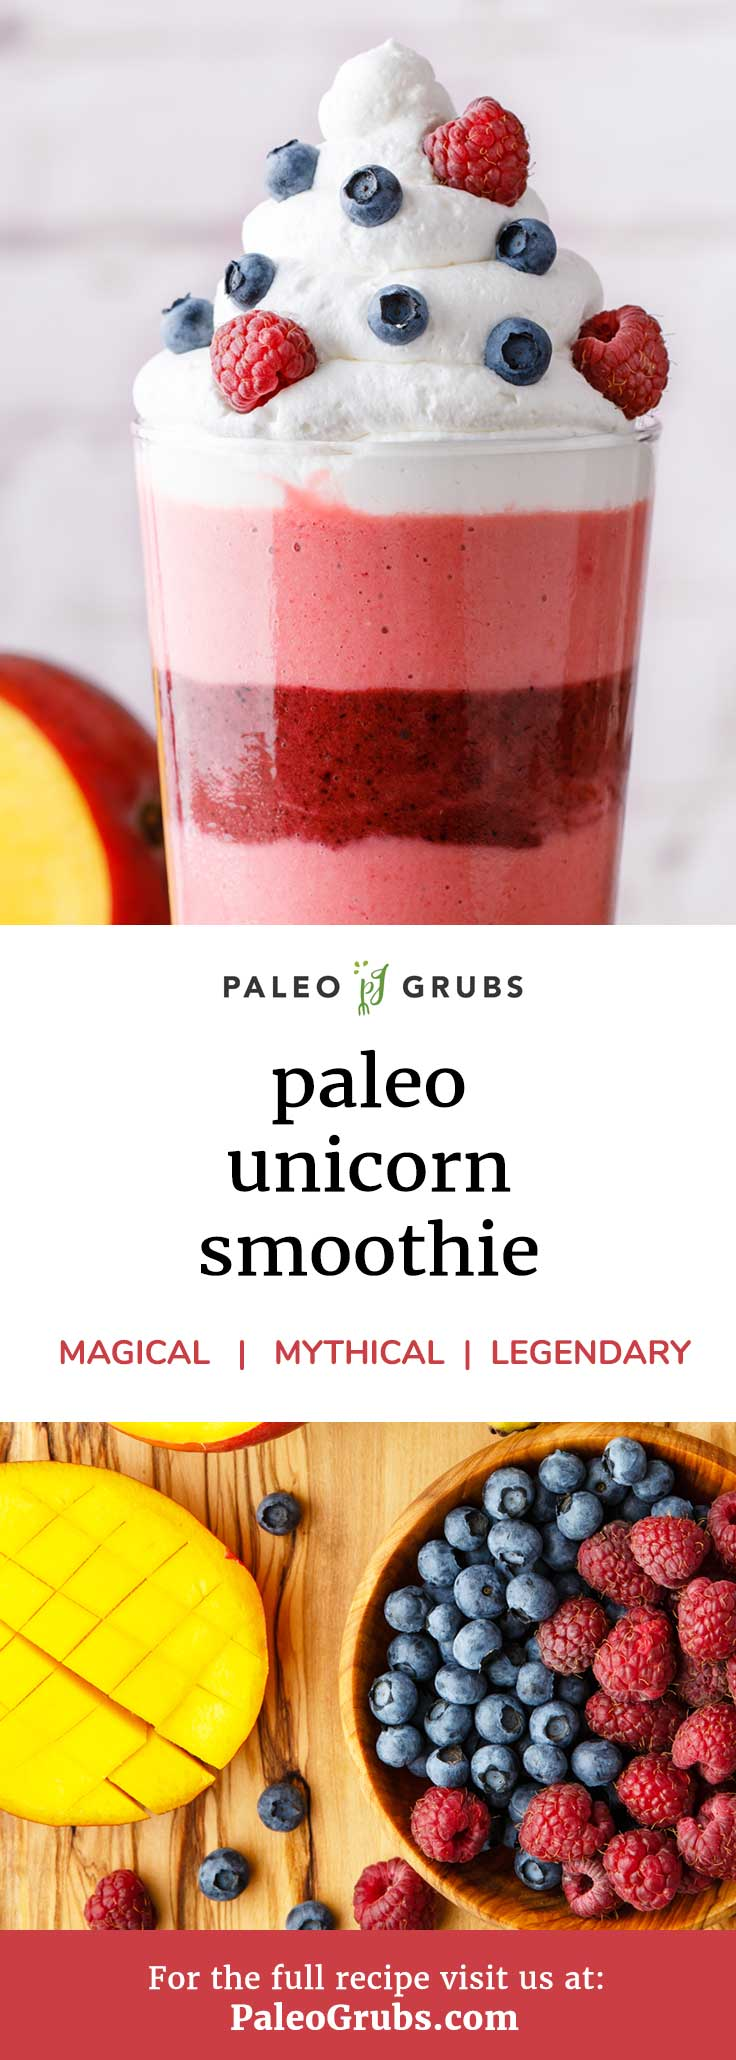 Don't miss out on this magical unicorn paleo smoothie (and it's healthy!)